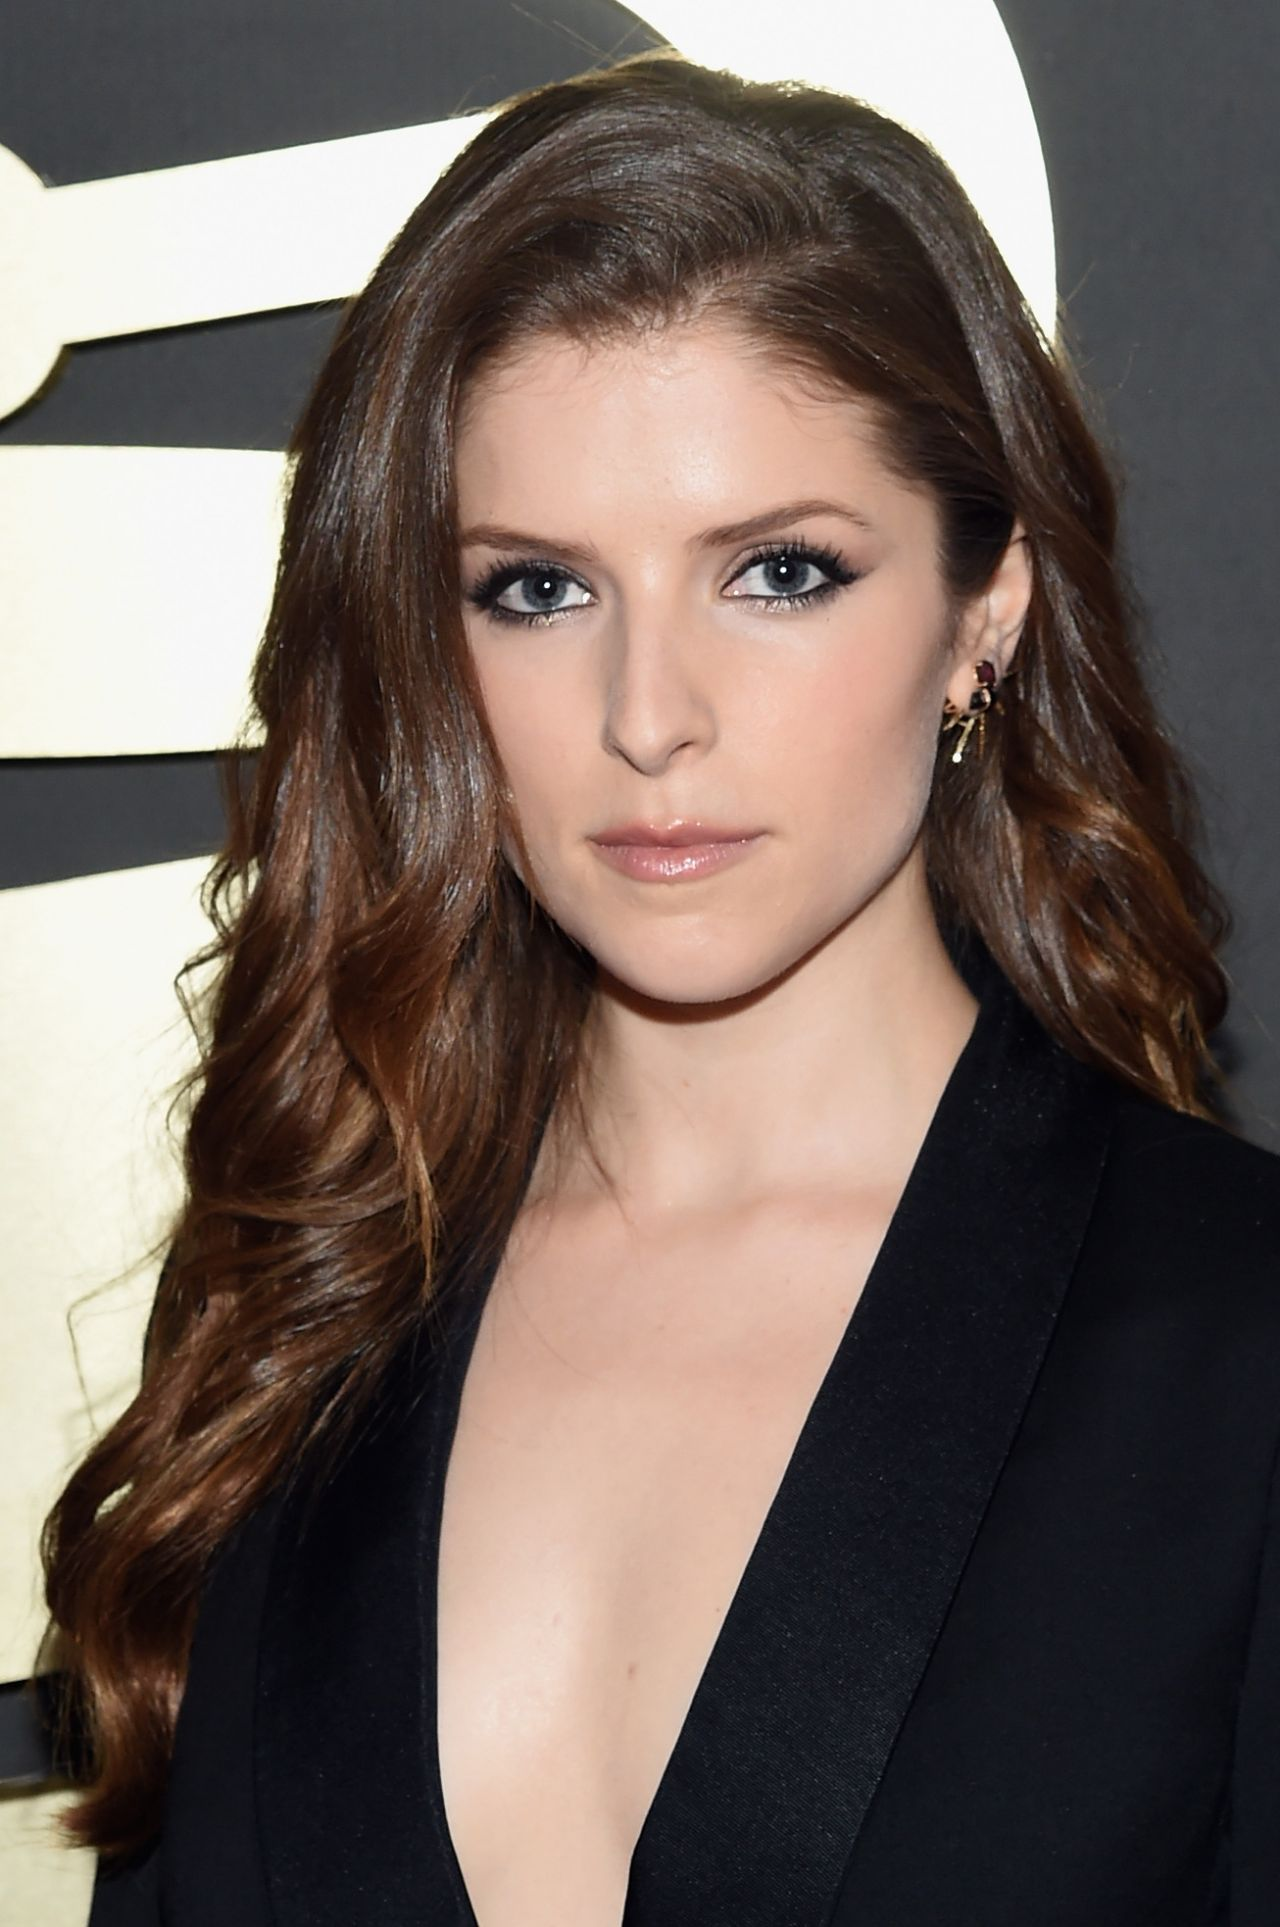 Anna Kendrick – 2015 Grammy Awards in Los Angeles Anna Kendrick